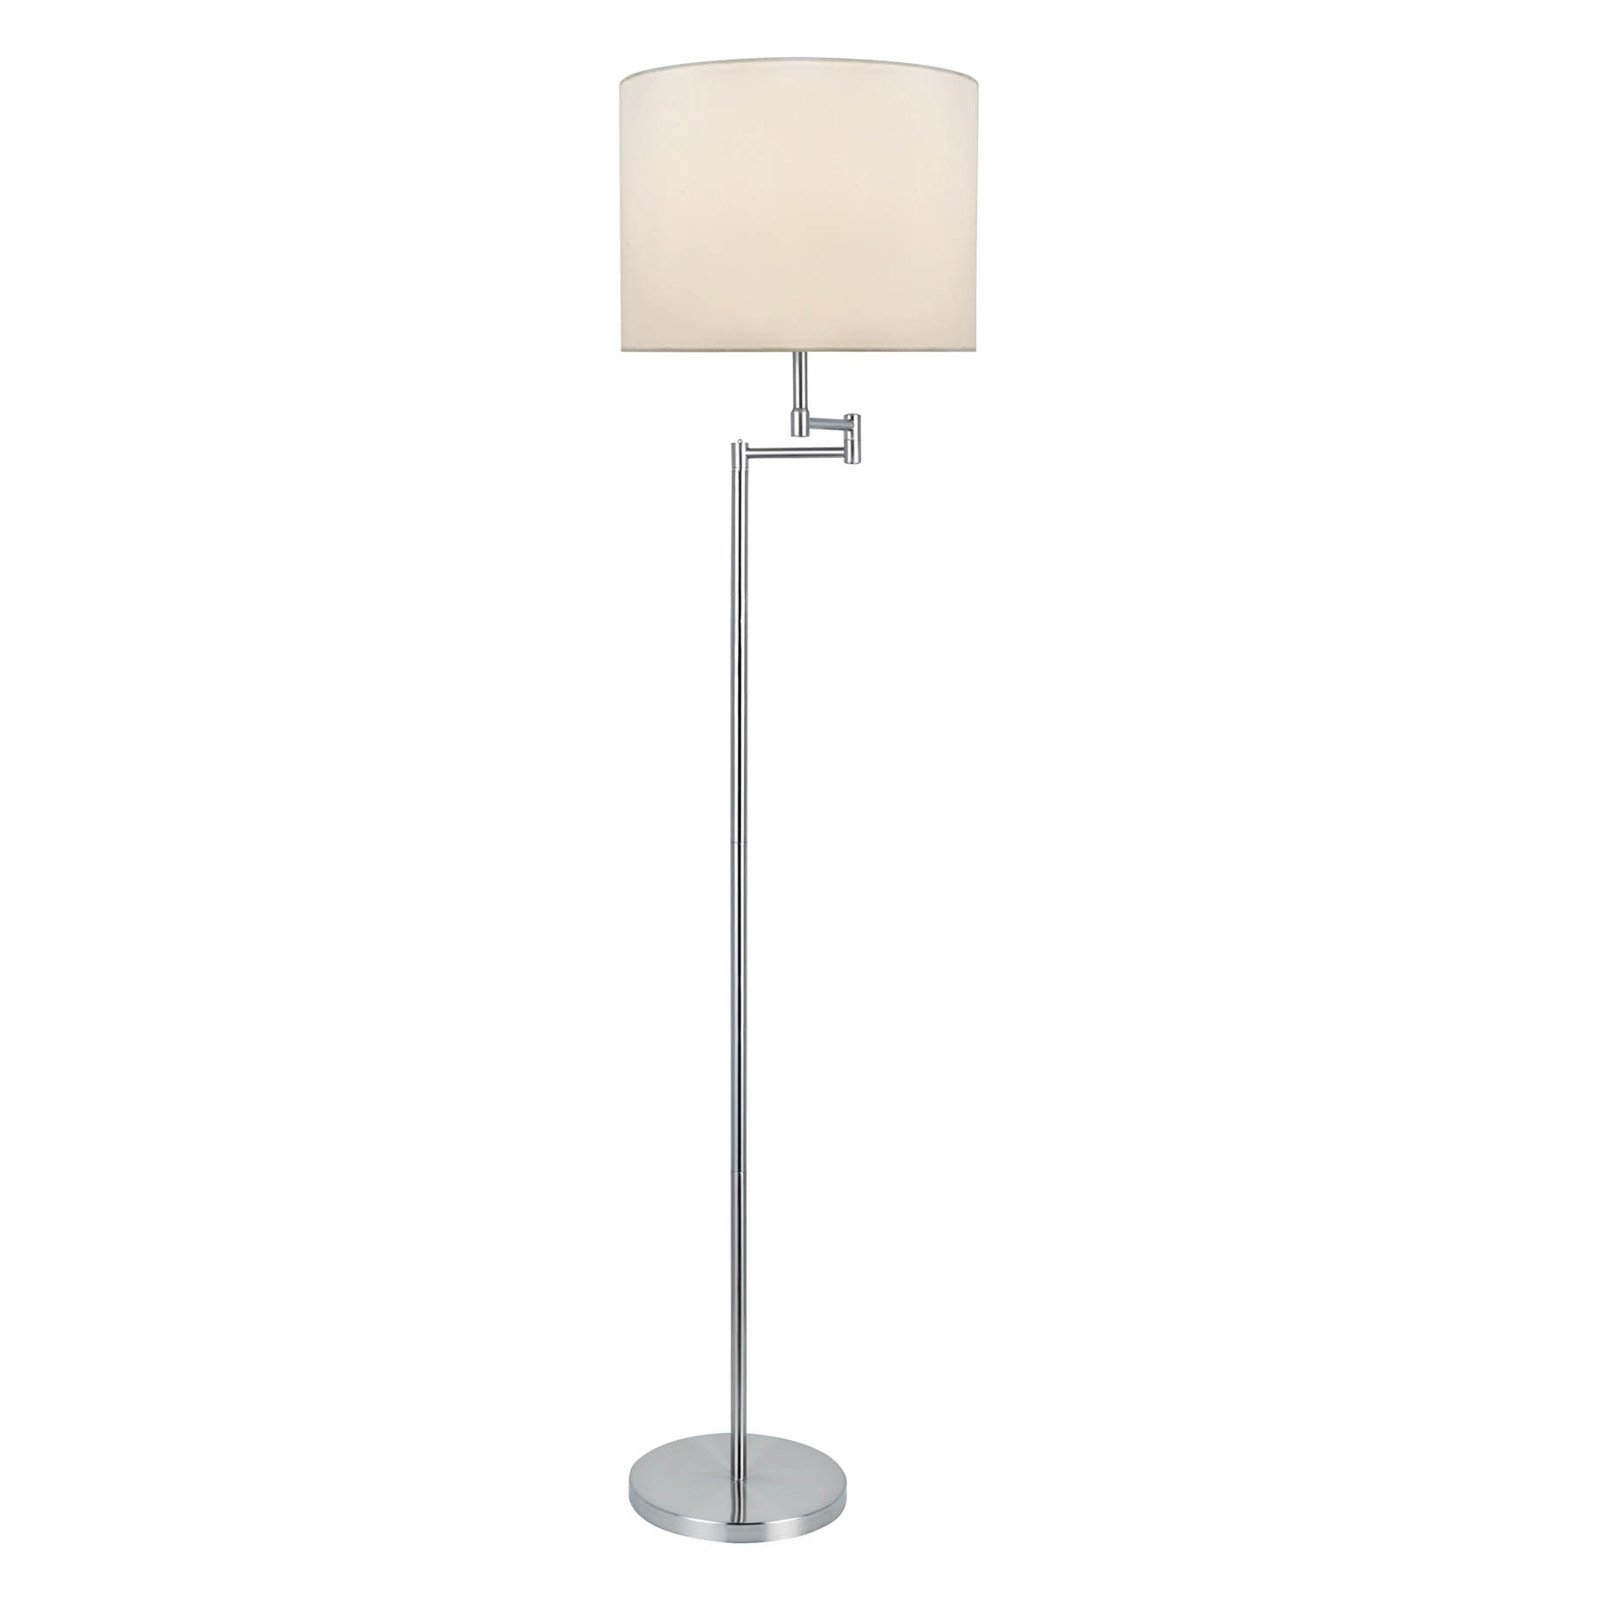 Lite Source Durango Swing Arm Floor Lamp